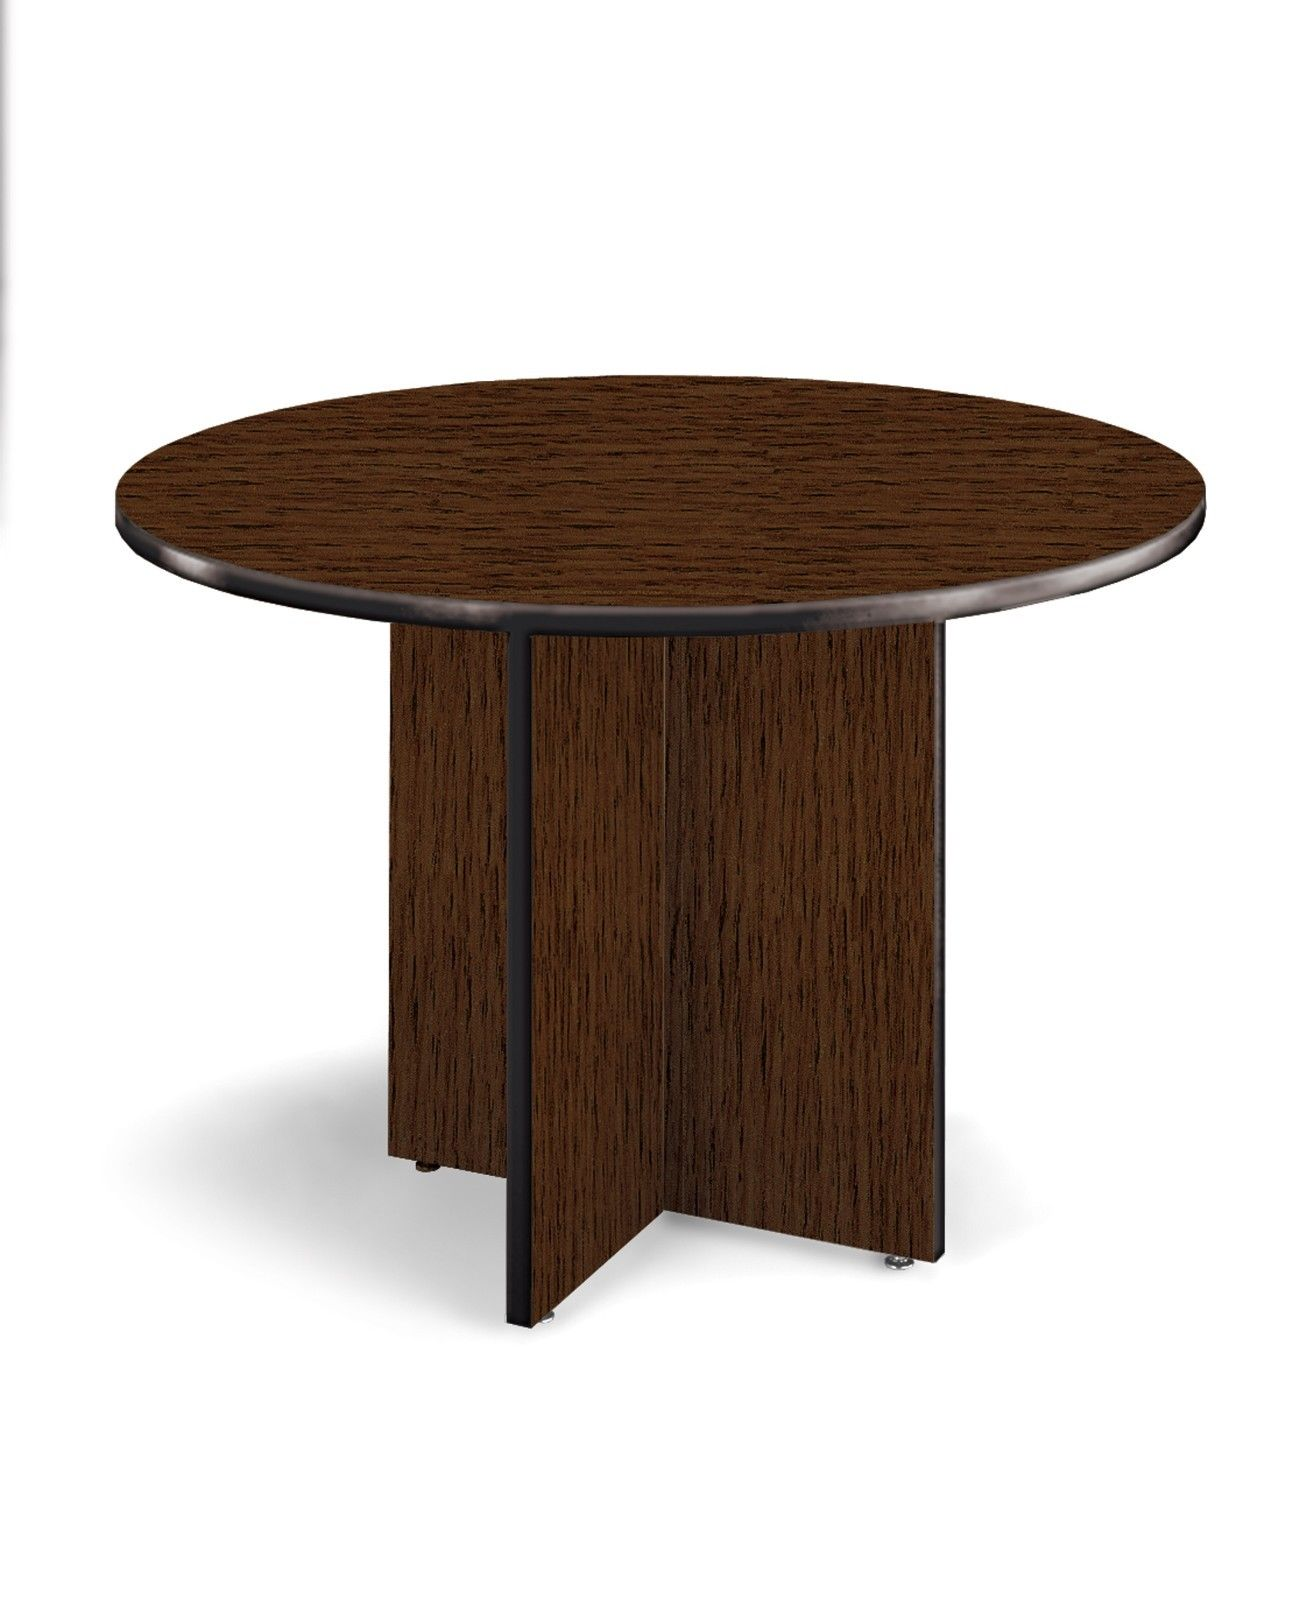 "#22 - 42"" Round Conference Table w/ High-Pressure Laminate Surface and Mahogany Finish"